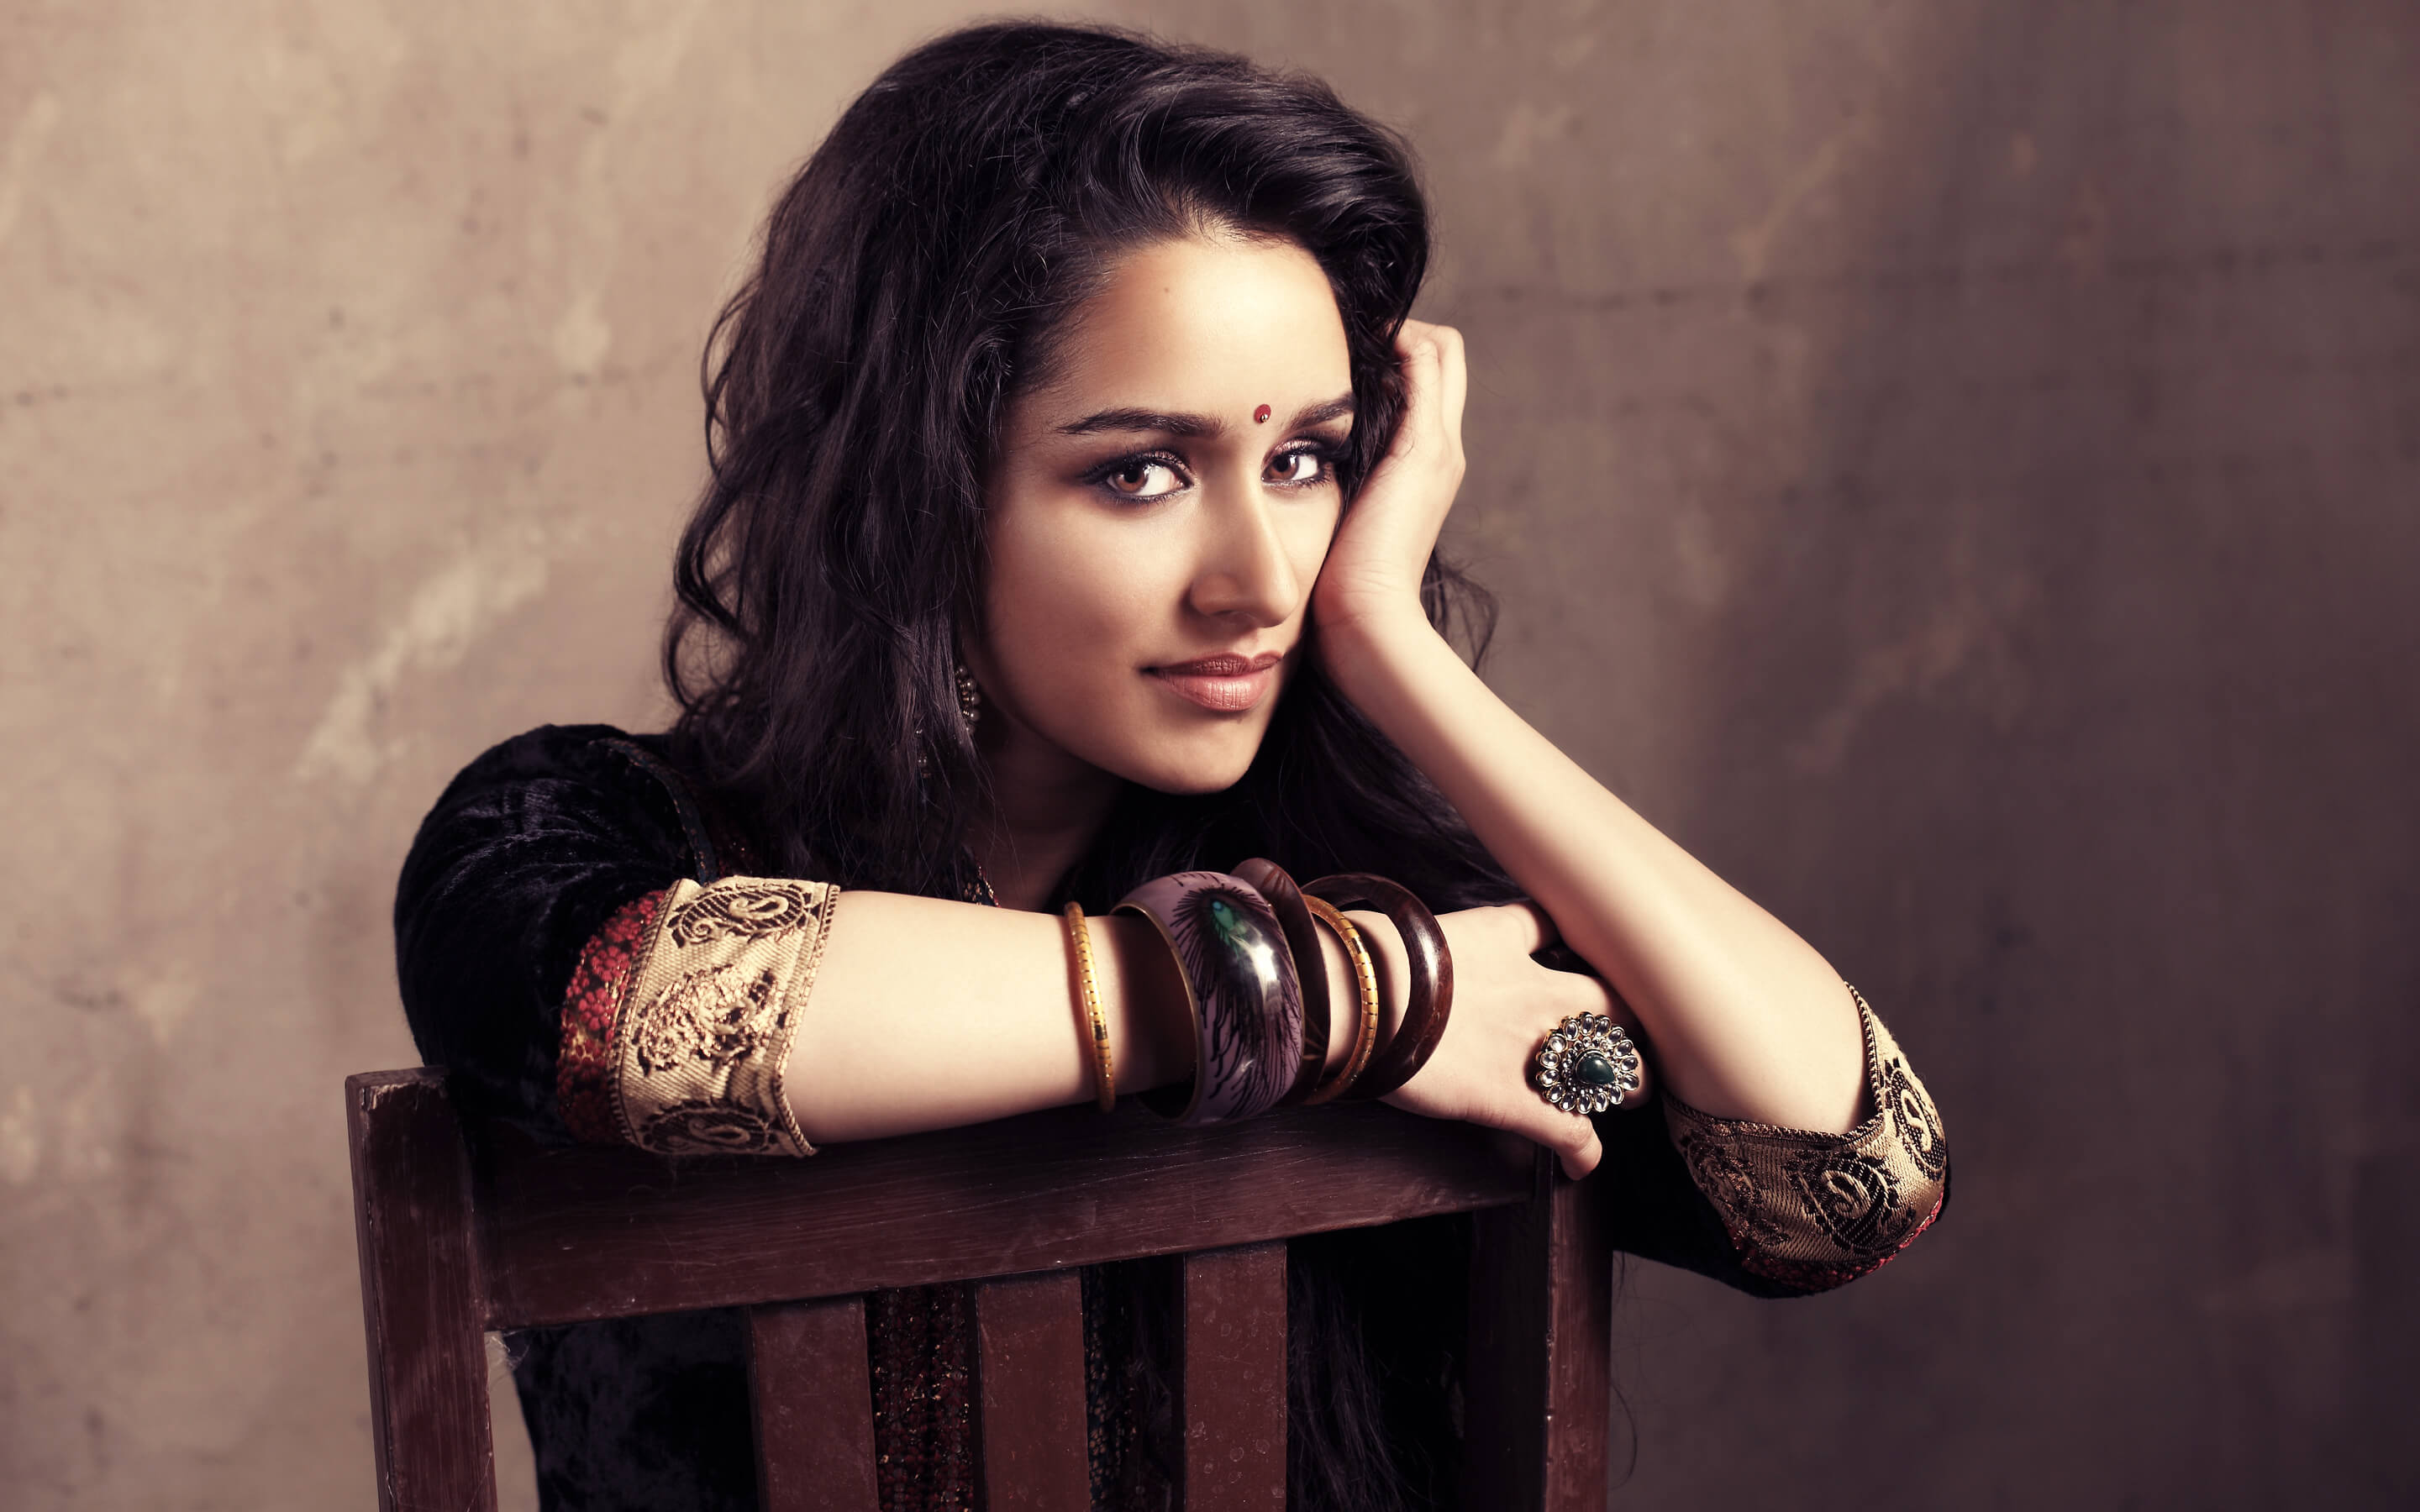 Shraddha Kapoor Upcoming Movies 2015 and 2016